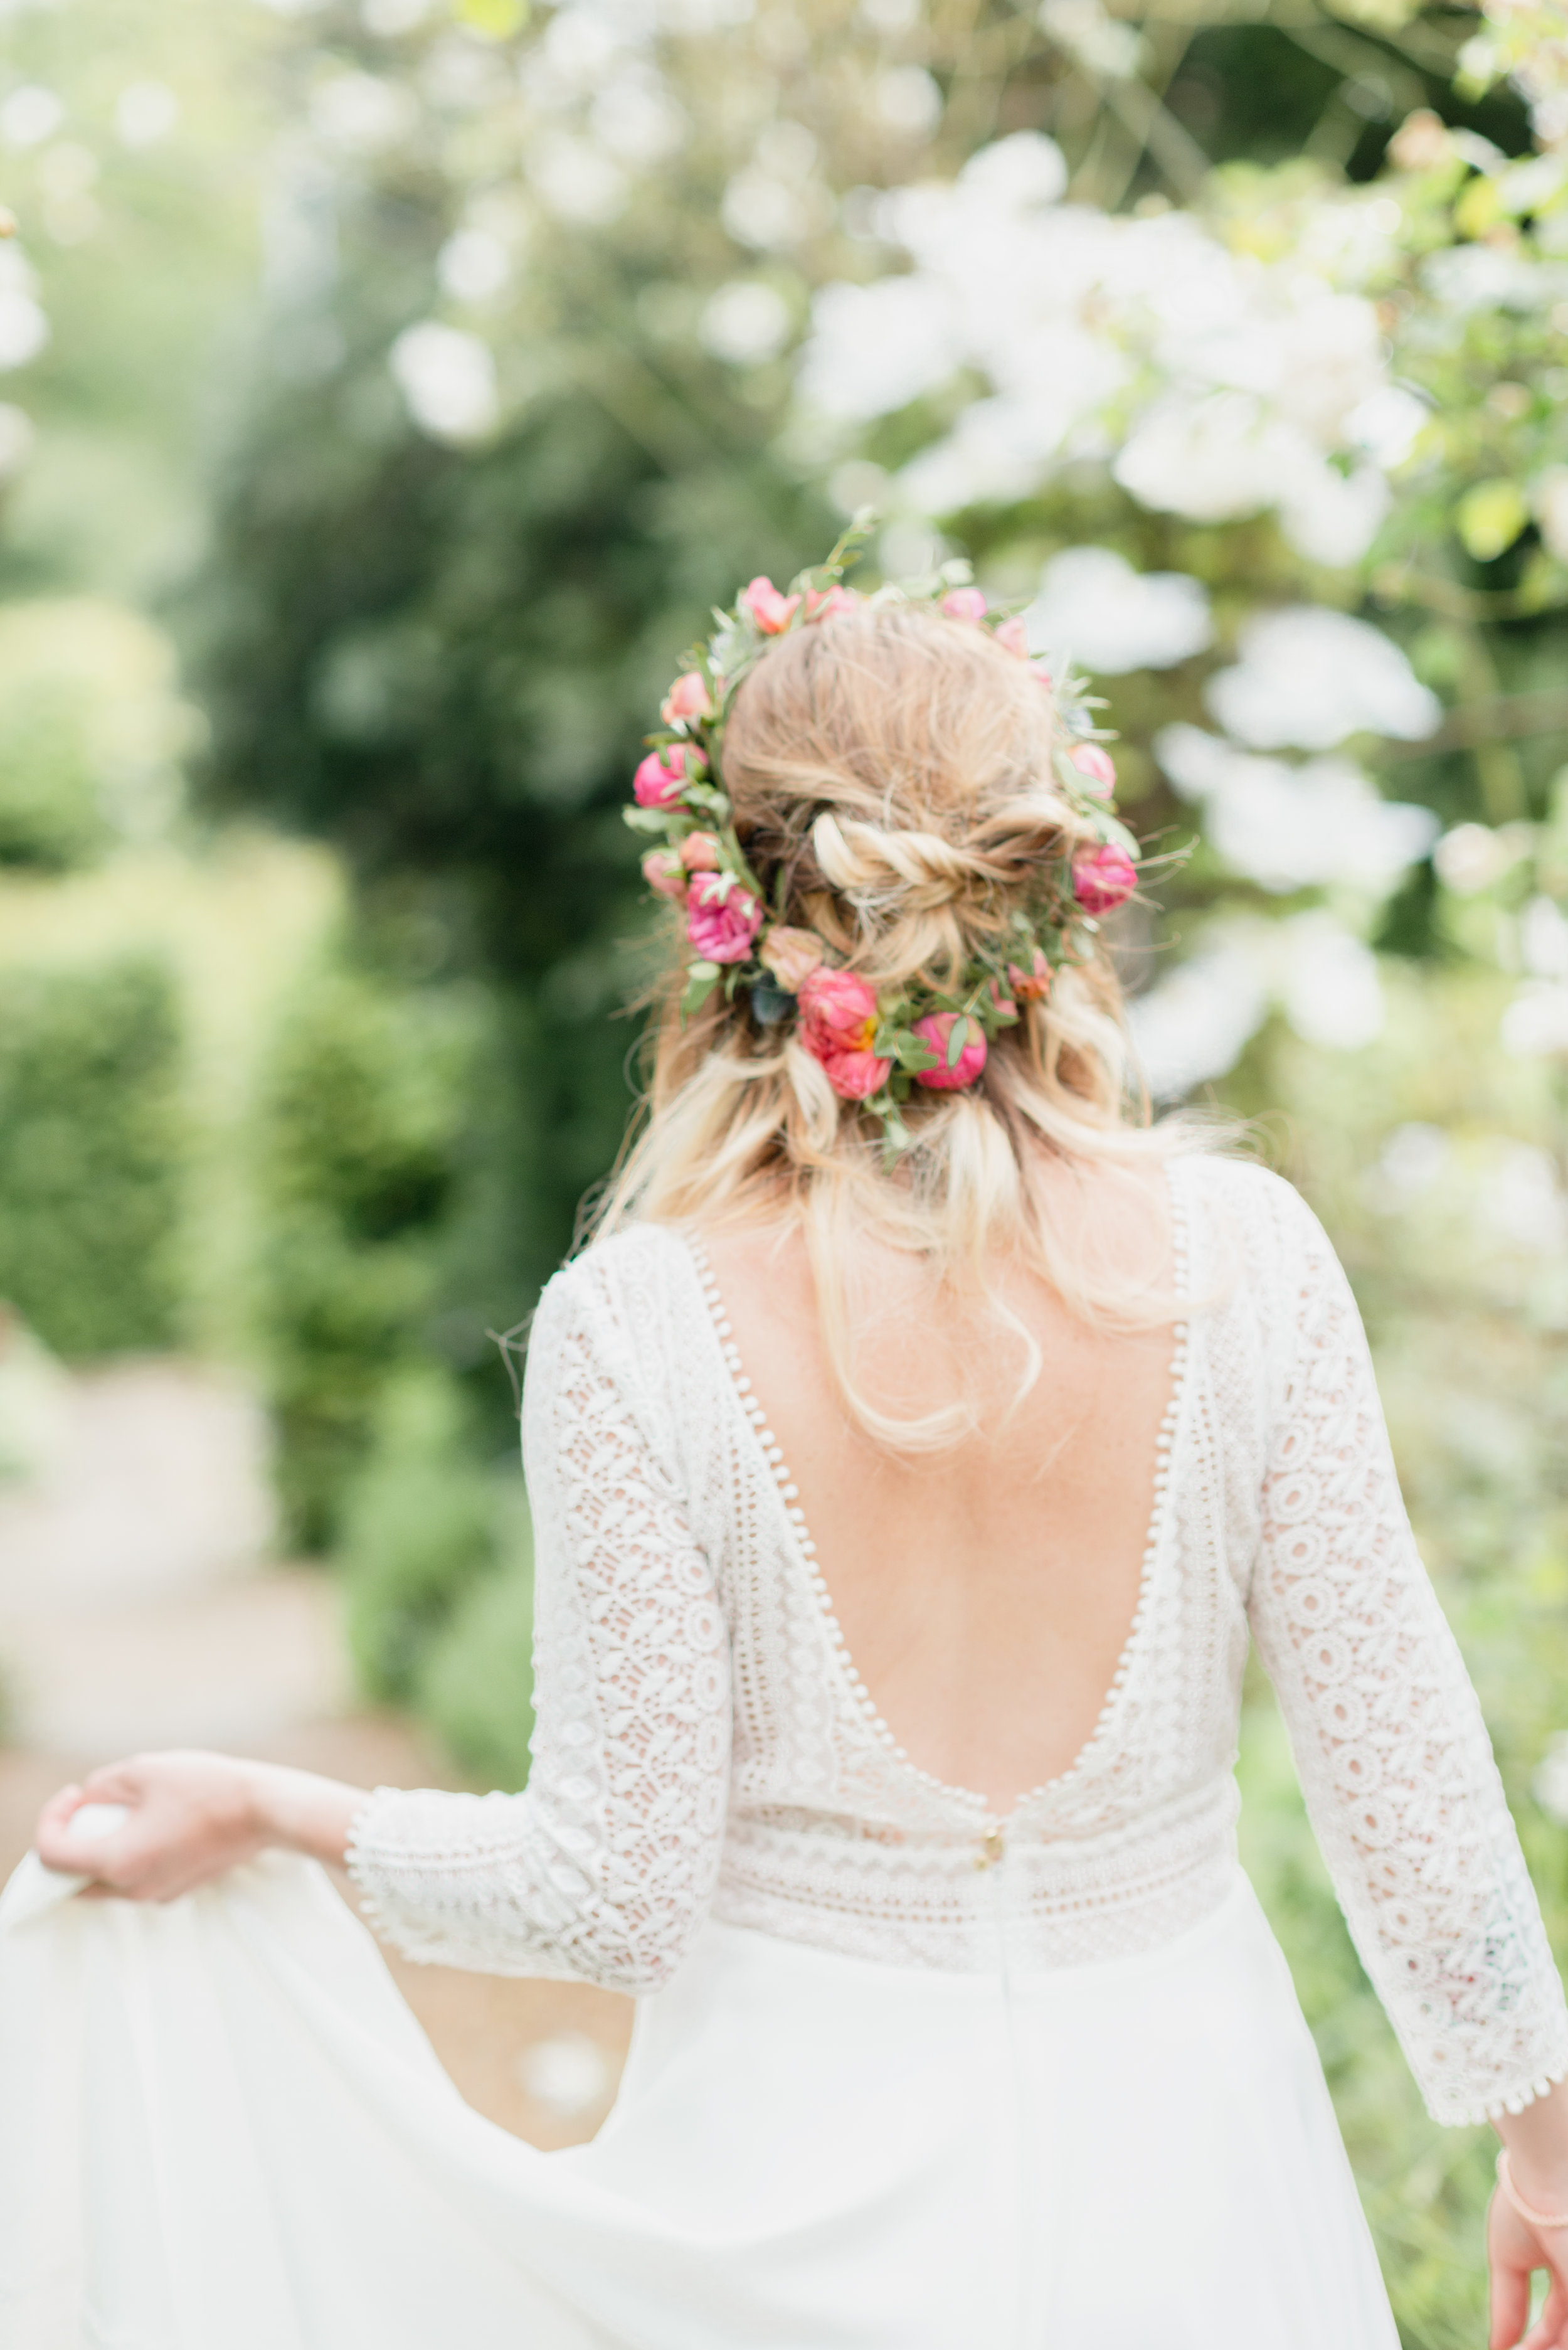 S+A_William Cecil Wedding_Boho Wedding_Fine Art Wedding_Rebekah Robert Photography-874.jpg